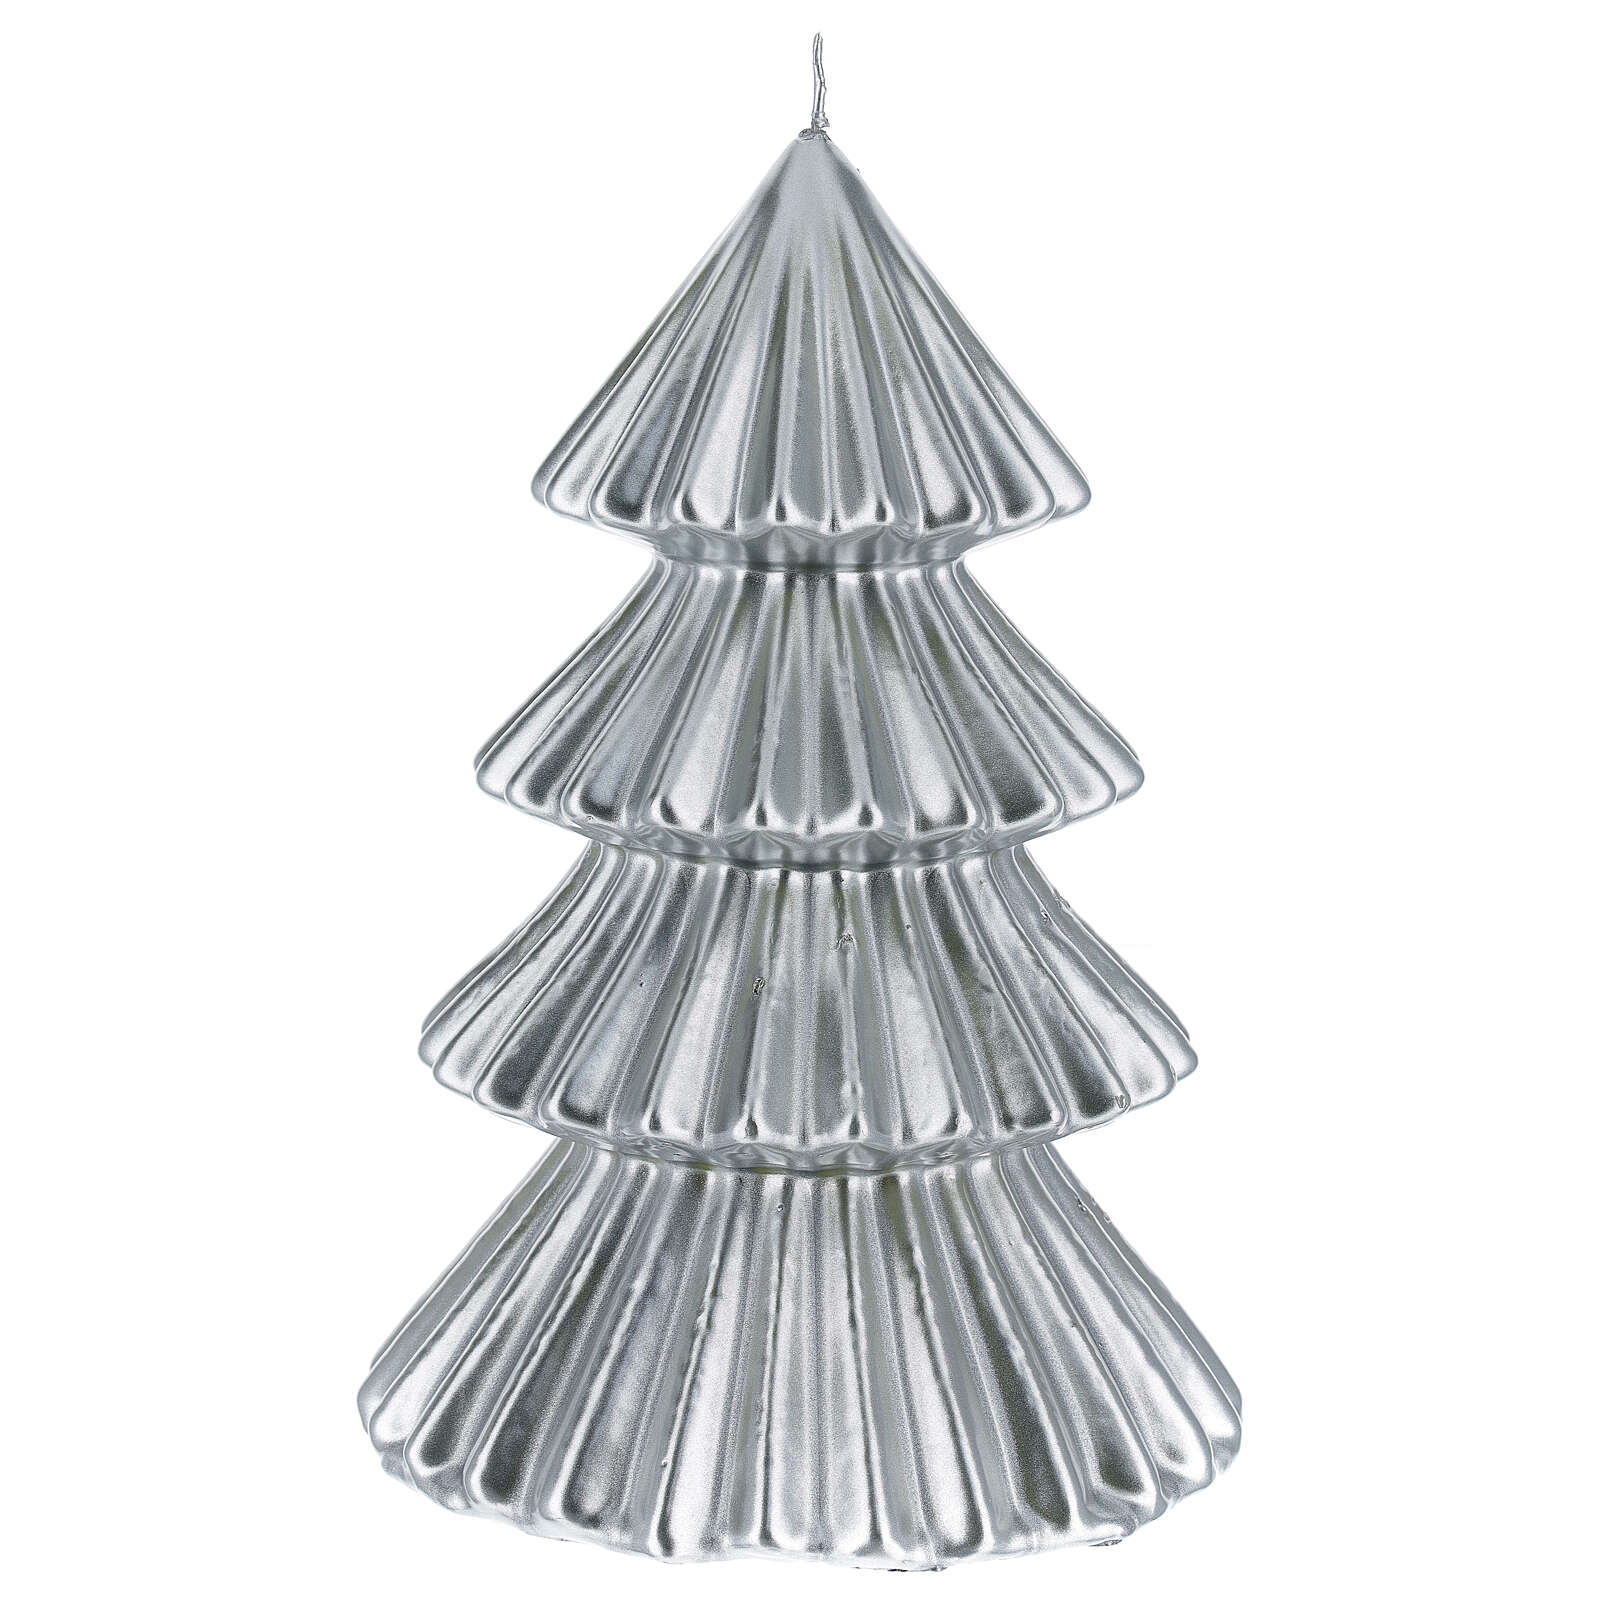 Silver Tokyo Christmas candle tree shape 9 in 3